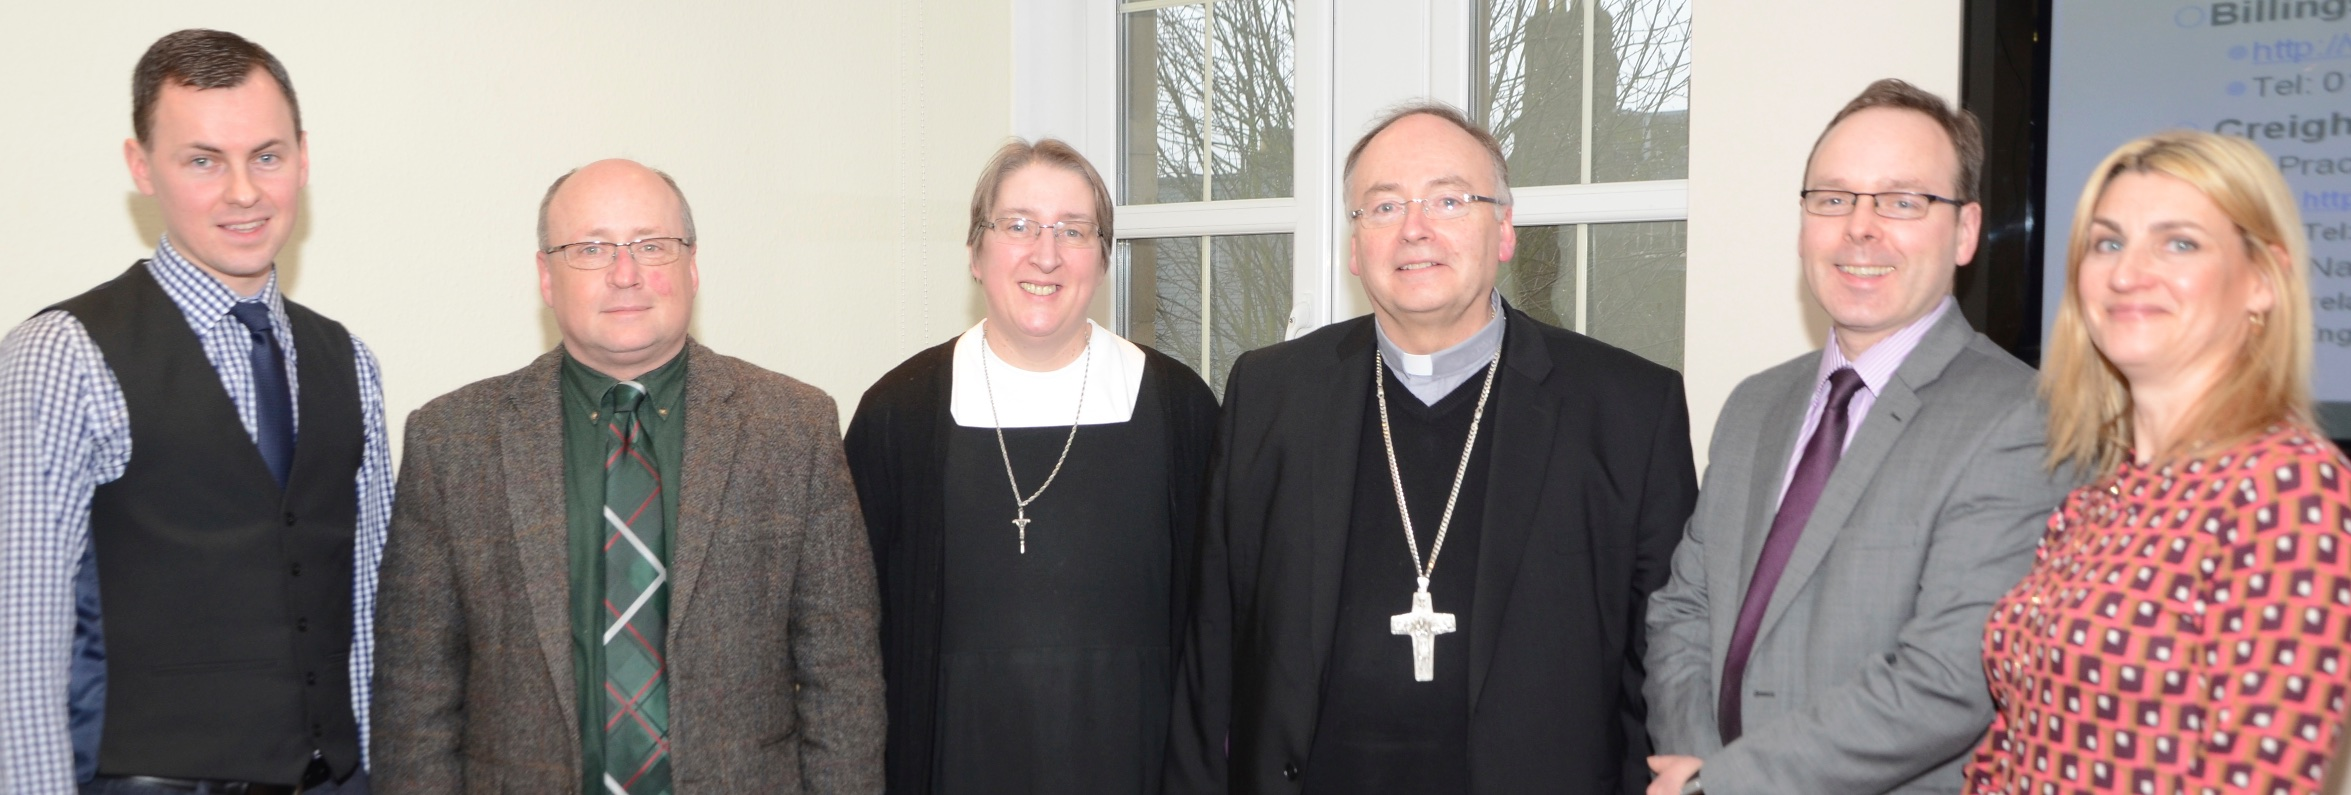 Dr John Paul O'Sullivan, Dr Calum MacKellar (Director of Research, Scottish Council on Human Bioethics), Sr Roseann Ready (founder of the Order of the Sisters of the Gospel of Life), Bishop Stephen Robson (Dunkeld), Mr John Deighan (Catholic Church's Parliamentary Officer) and Claire McGrath (Dunkeld Diocese Pro Life)